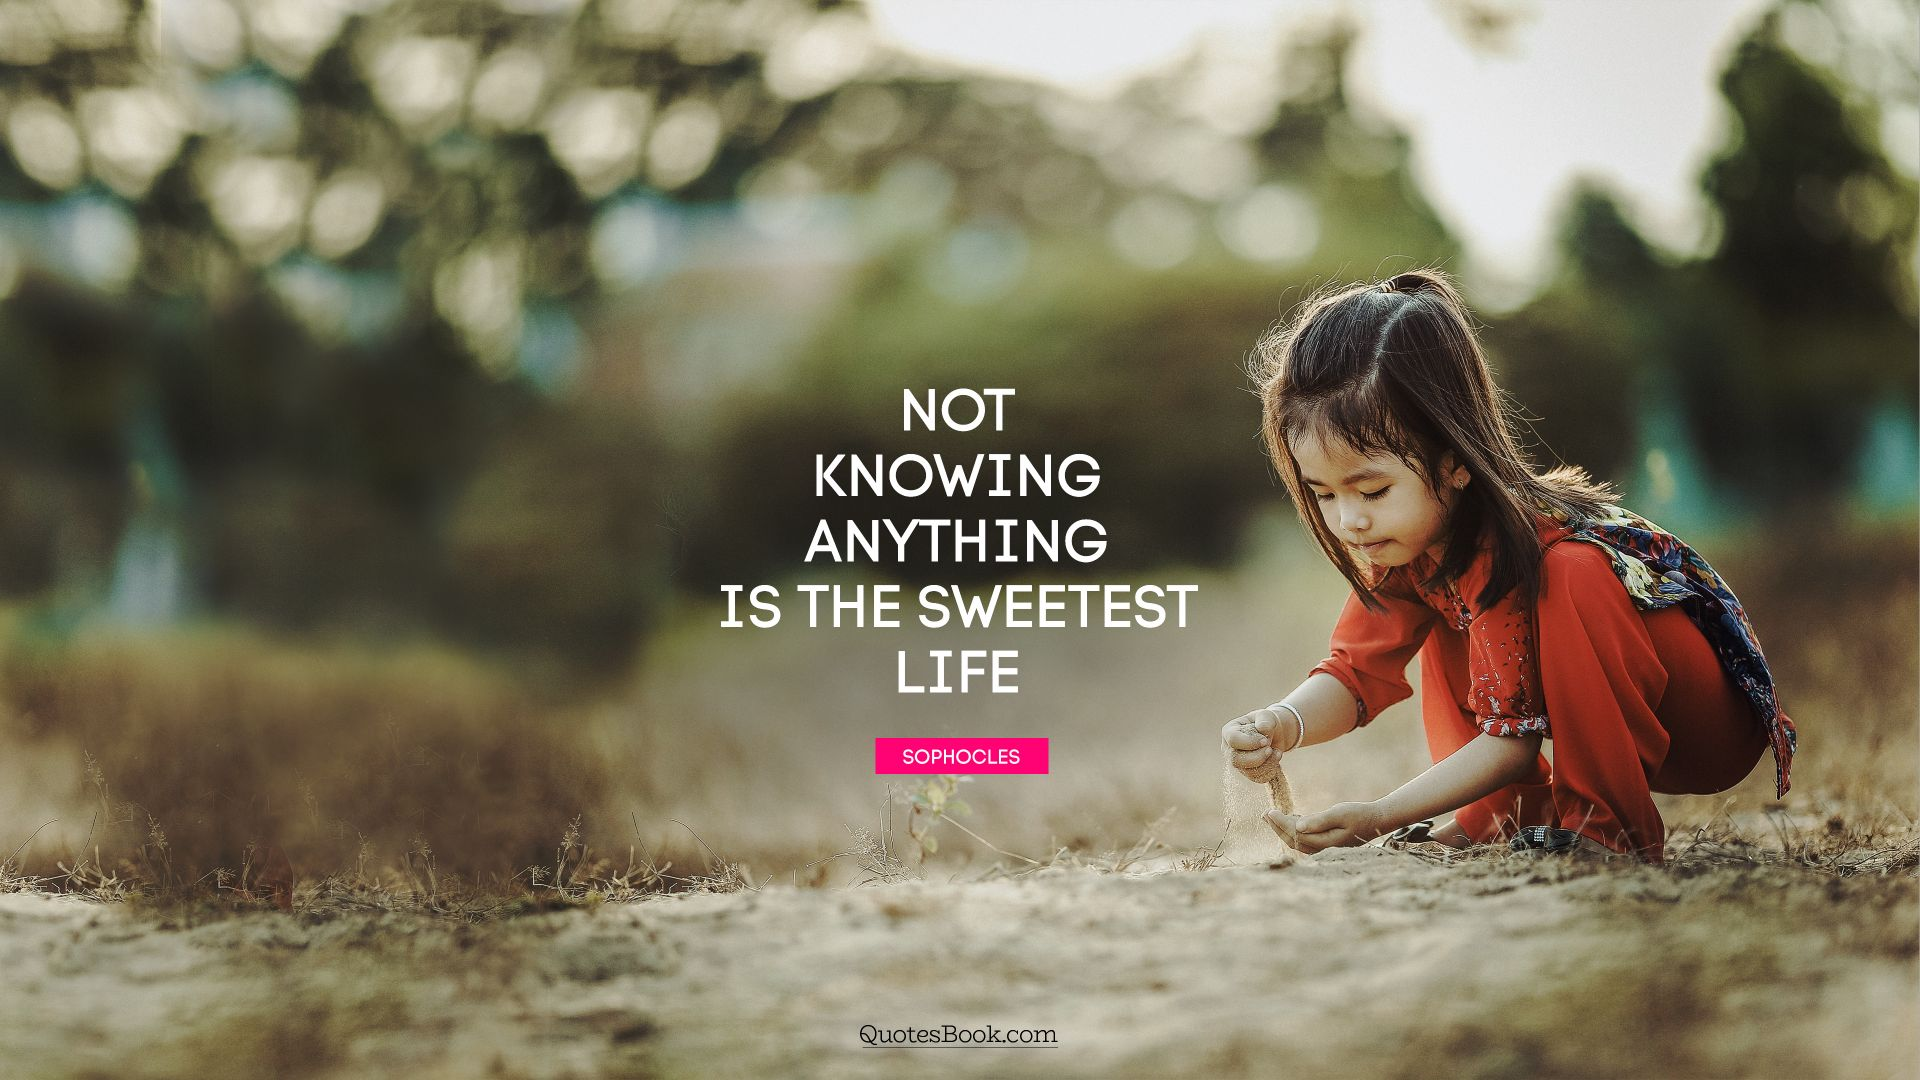 Not knowing anything is the sweetest life. - Quote by Sophocles